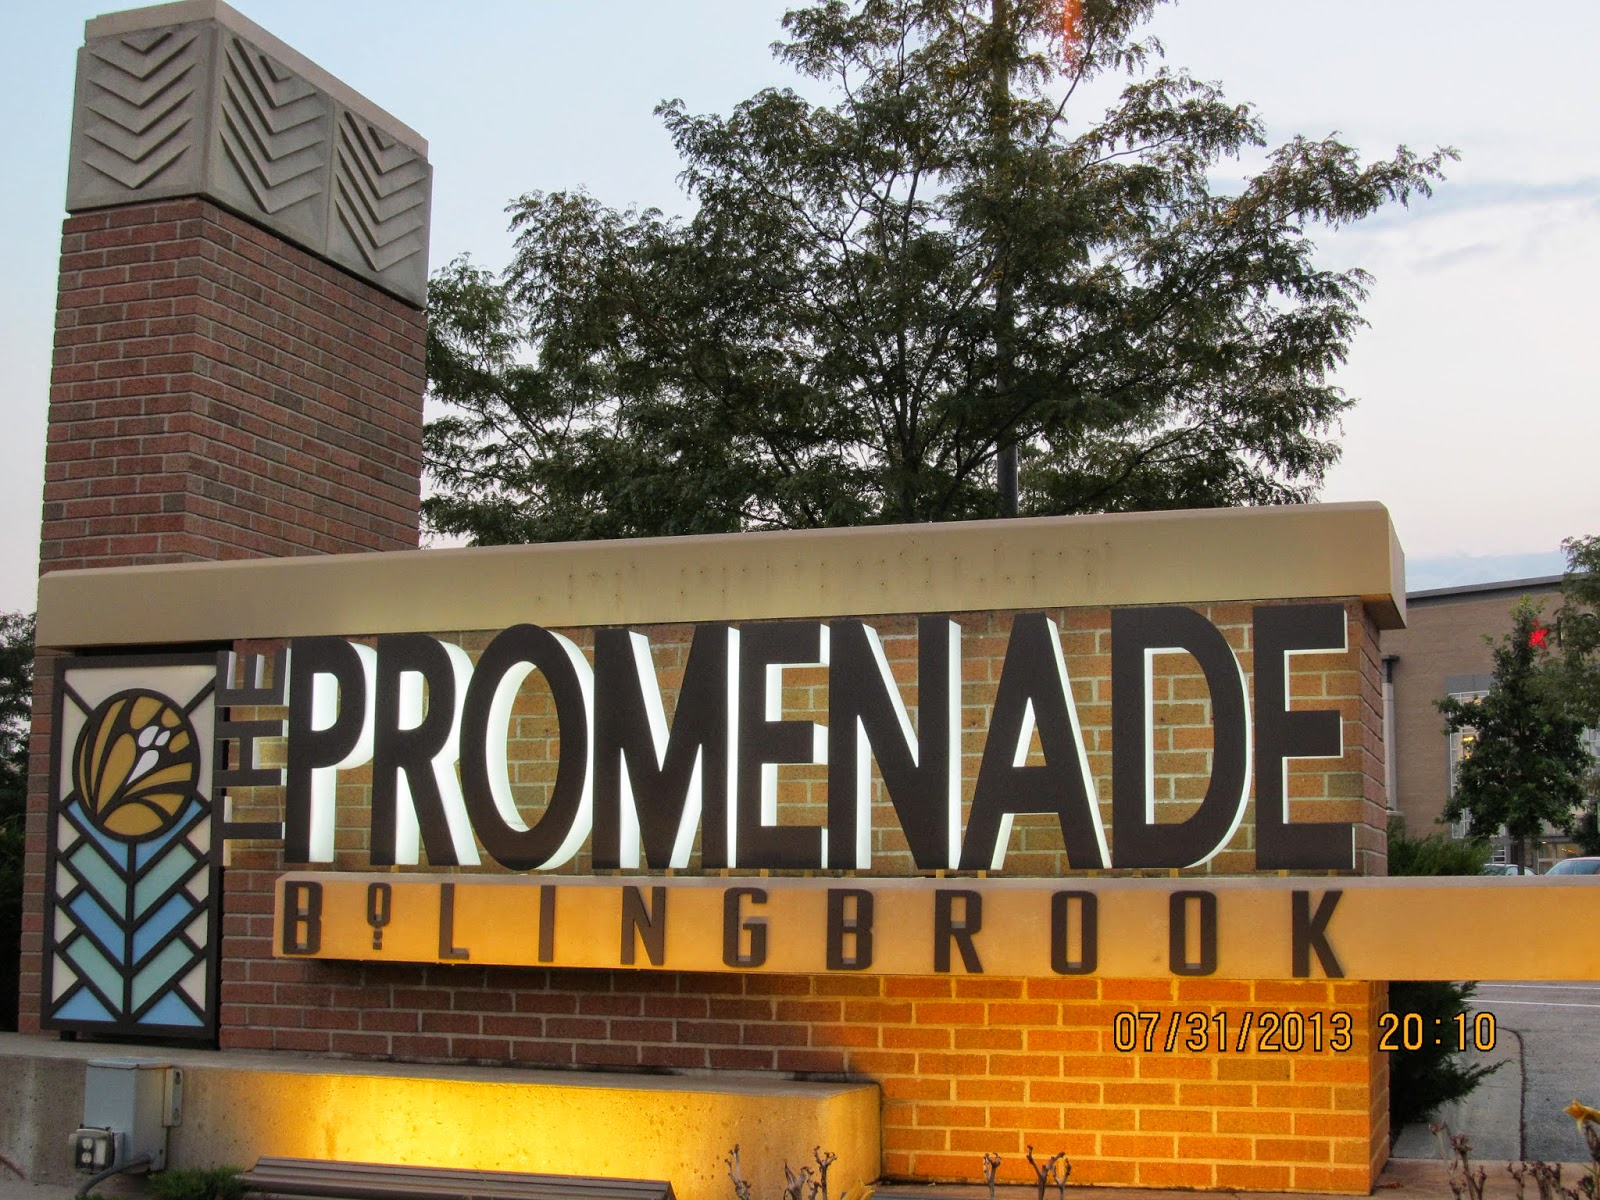 The Promenade Bolingbrook Is An Outdoor Ping Center In Il 45 Minutes Outside Of Chicago Via I 355 Or 55 North